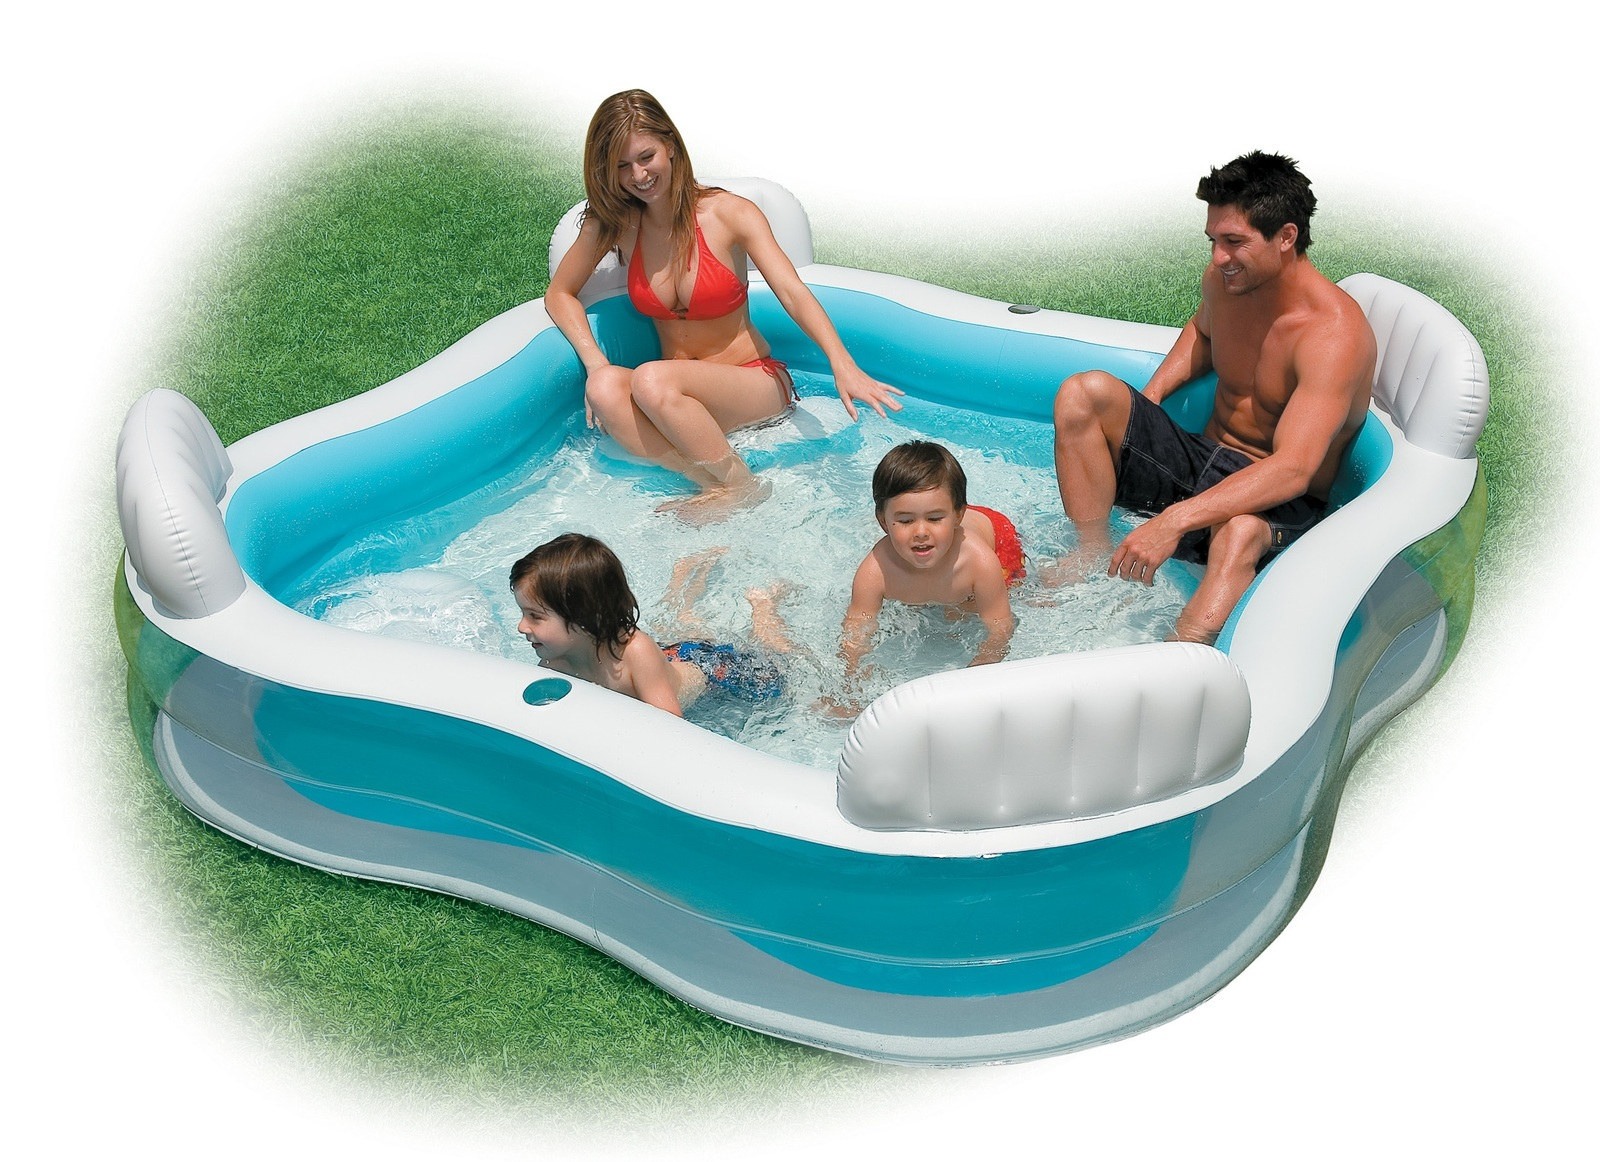 Intex Swim Center Family Lounge Inflatable Pool Images At Mighty Ape Nz